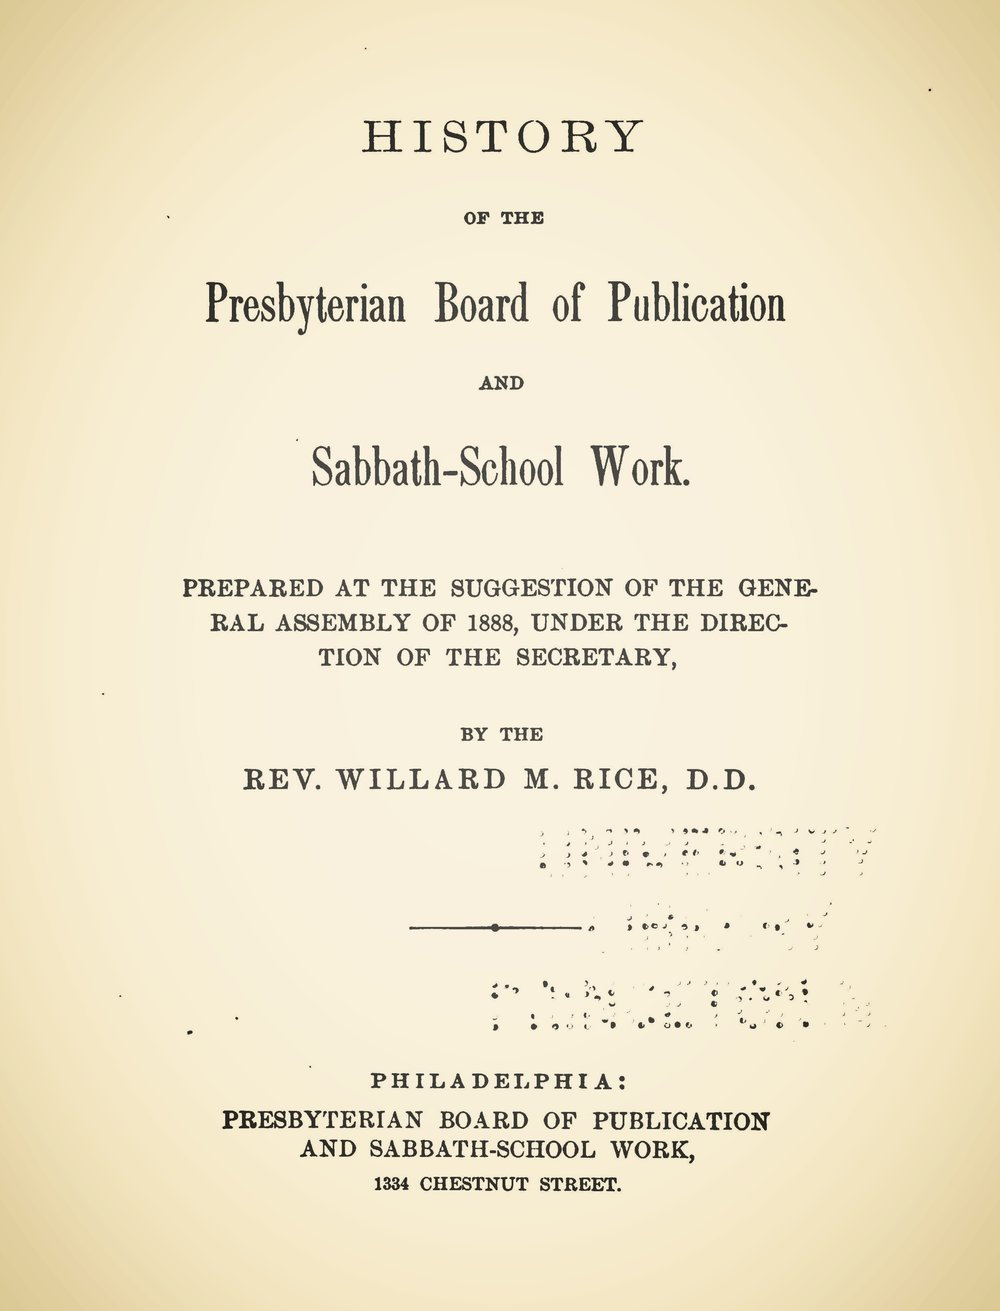 Rice, Willard Martin, History of the Presbyterian Board of Publication and Sabbath-School Work Title Page.jpg